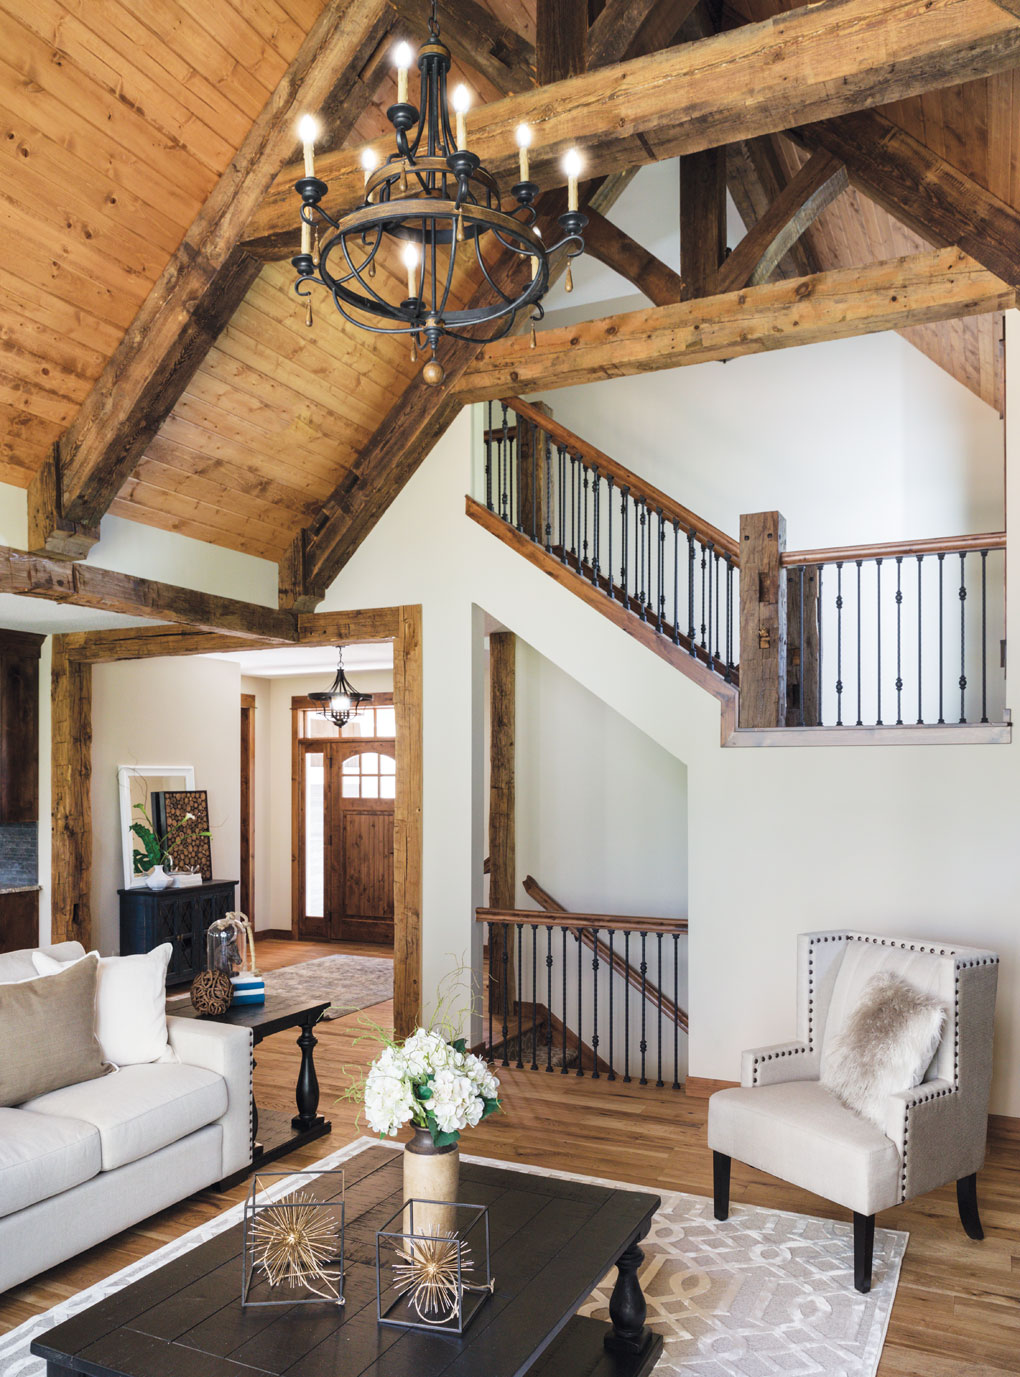 A living room and staircase featuring a vaulted ceiling, reclaimed trusses, hand-hewn newel posts, and wrought-iron railings give the room a mountain-lodge vibe.